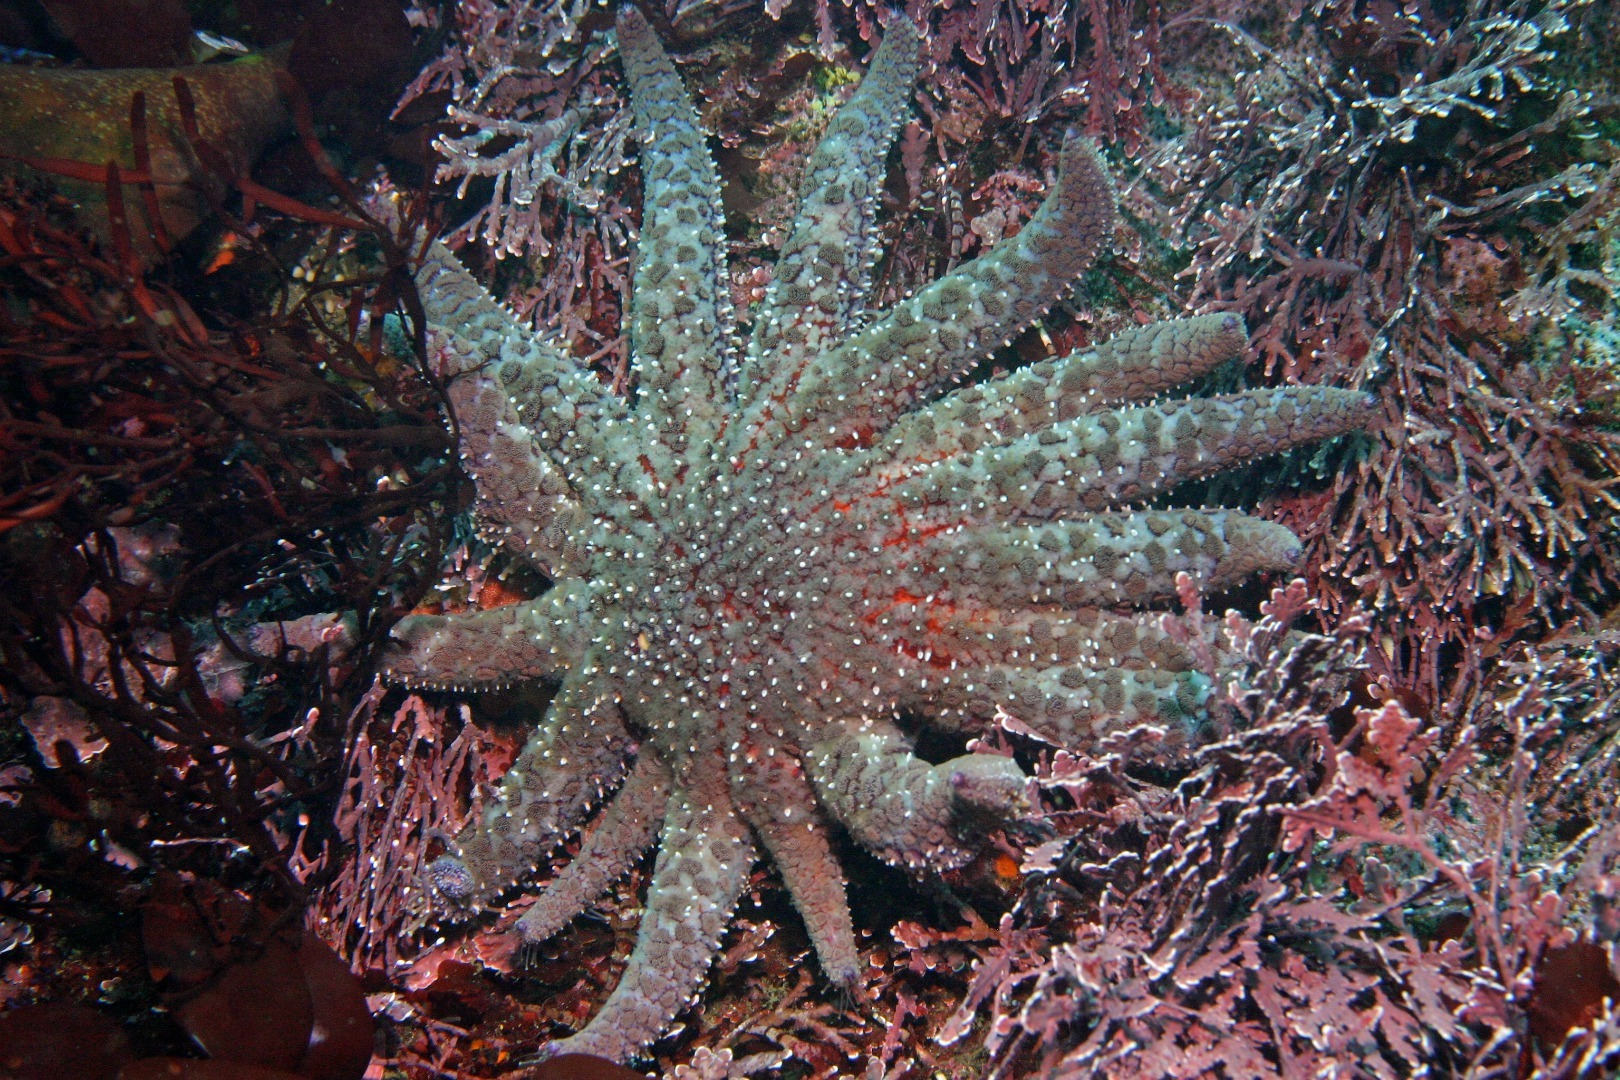 a large purple sea star with 15 legs